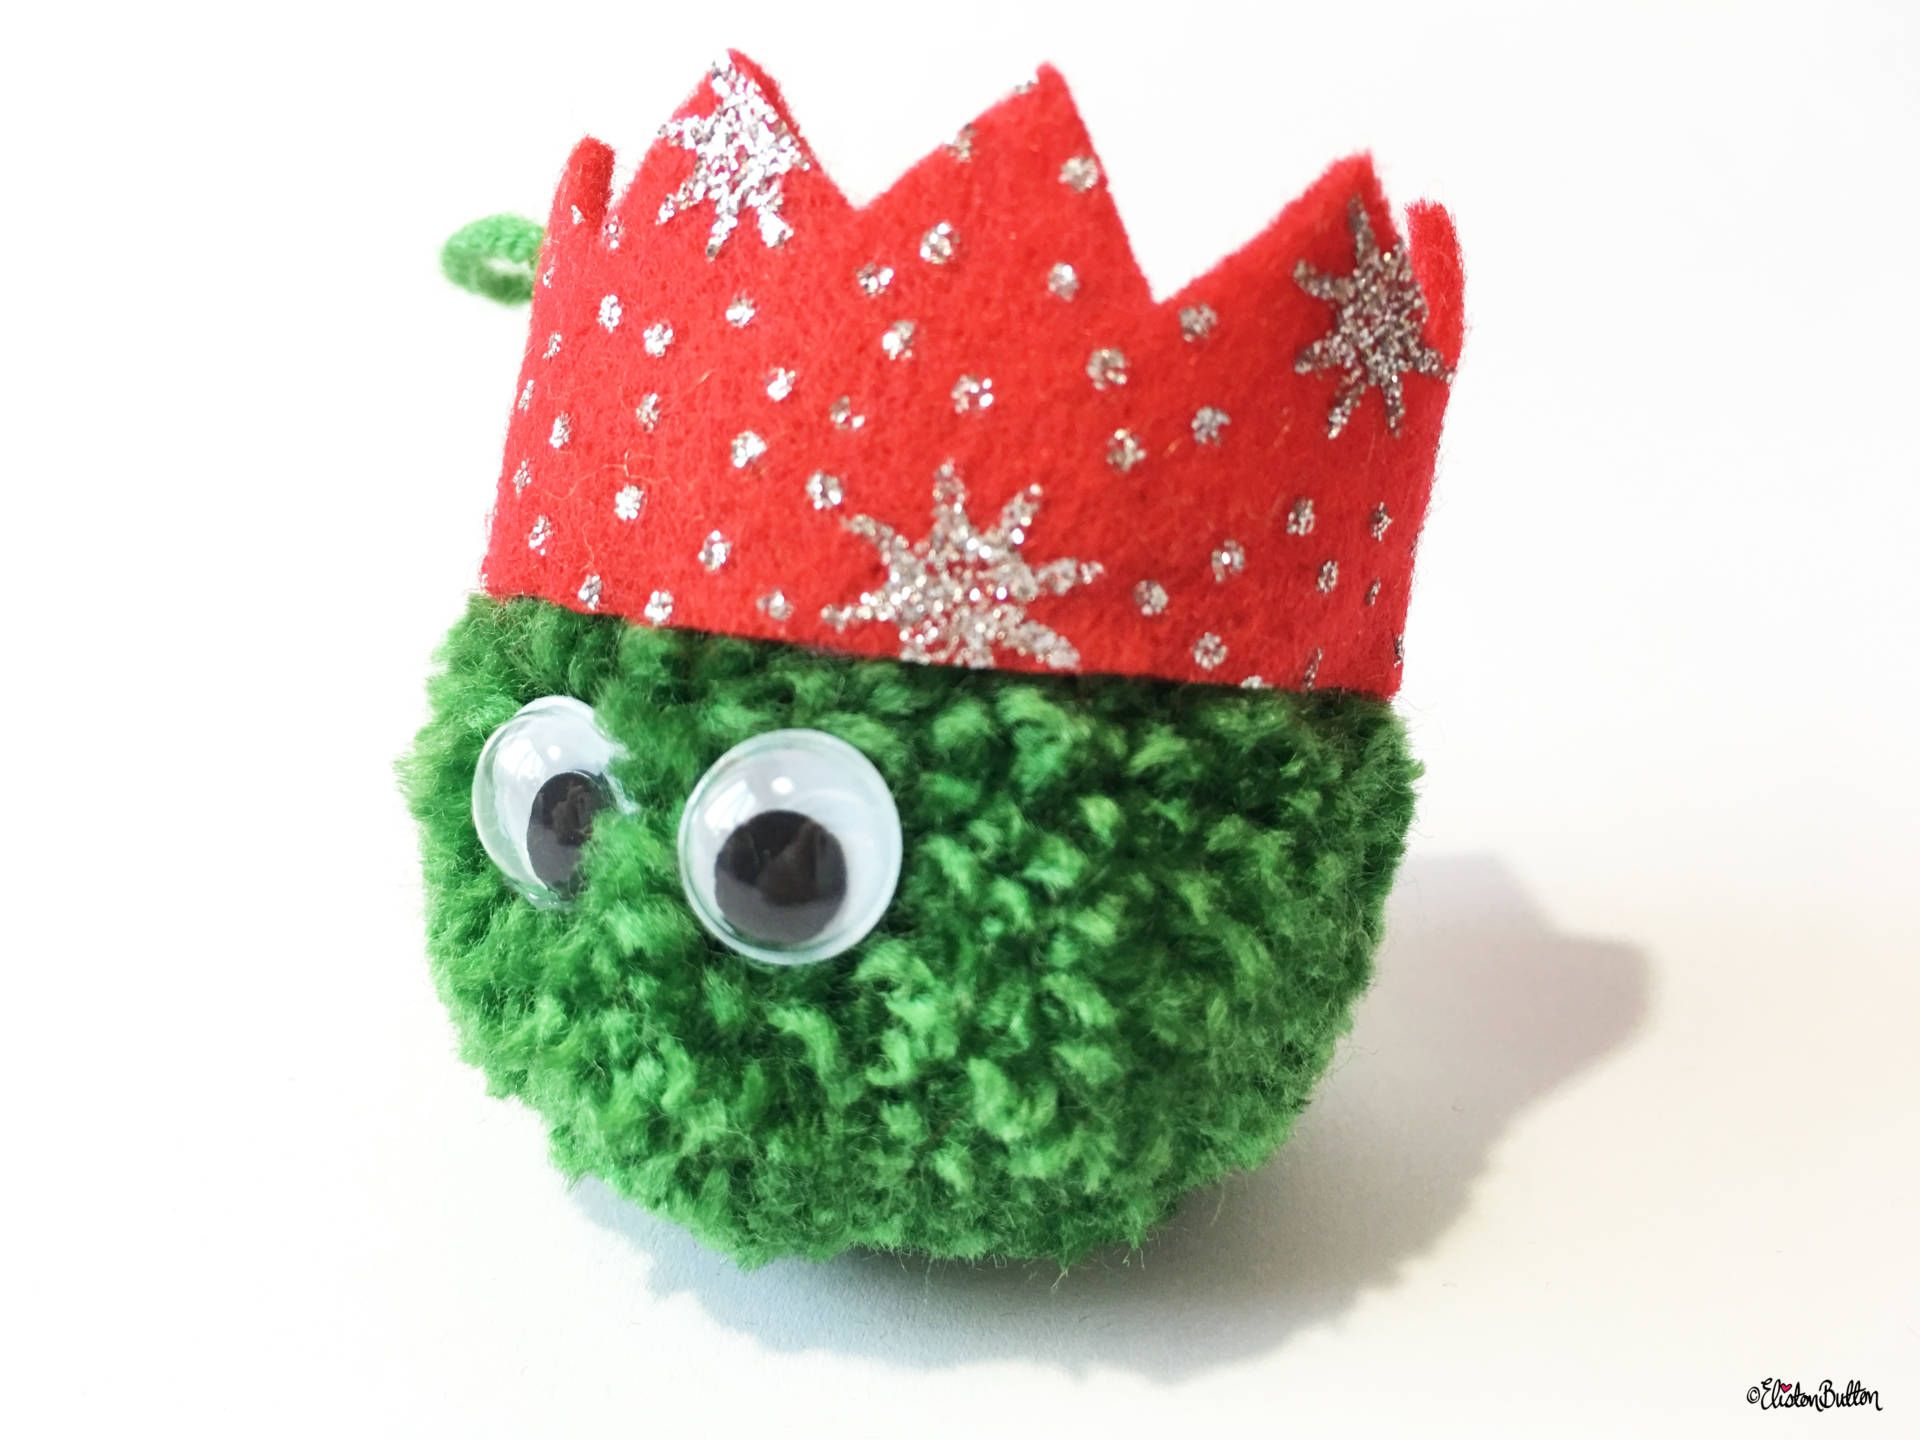 Dark Green, Red Glitter Party Hat Pom Pom Sprout Christmas Decoration Side View - Create 30 - No. 8 & 9 - Christmas Sprout Garland and Decorations at www.elistonbutton.com - Eliston Button - That Crafty Kid – Art, Design, Craft & Adventure.